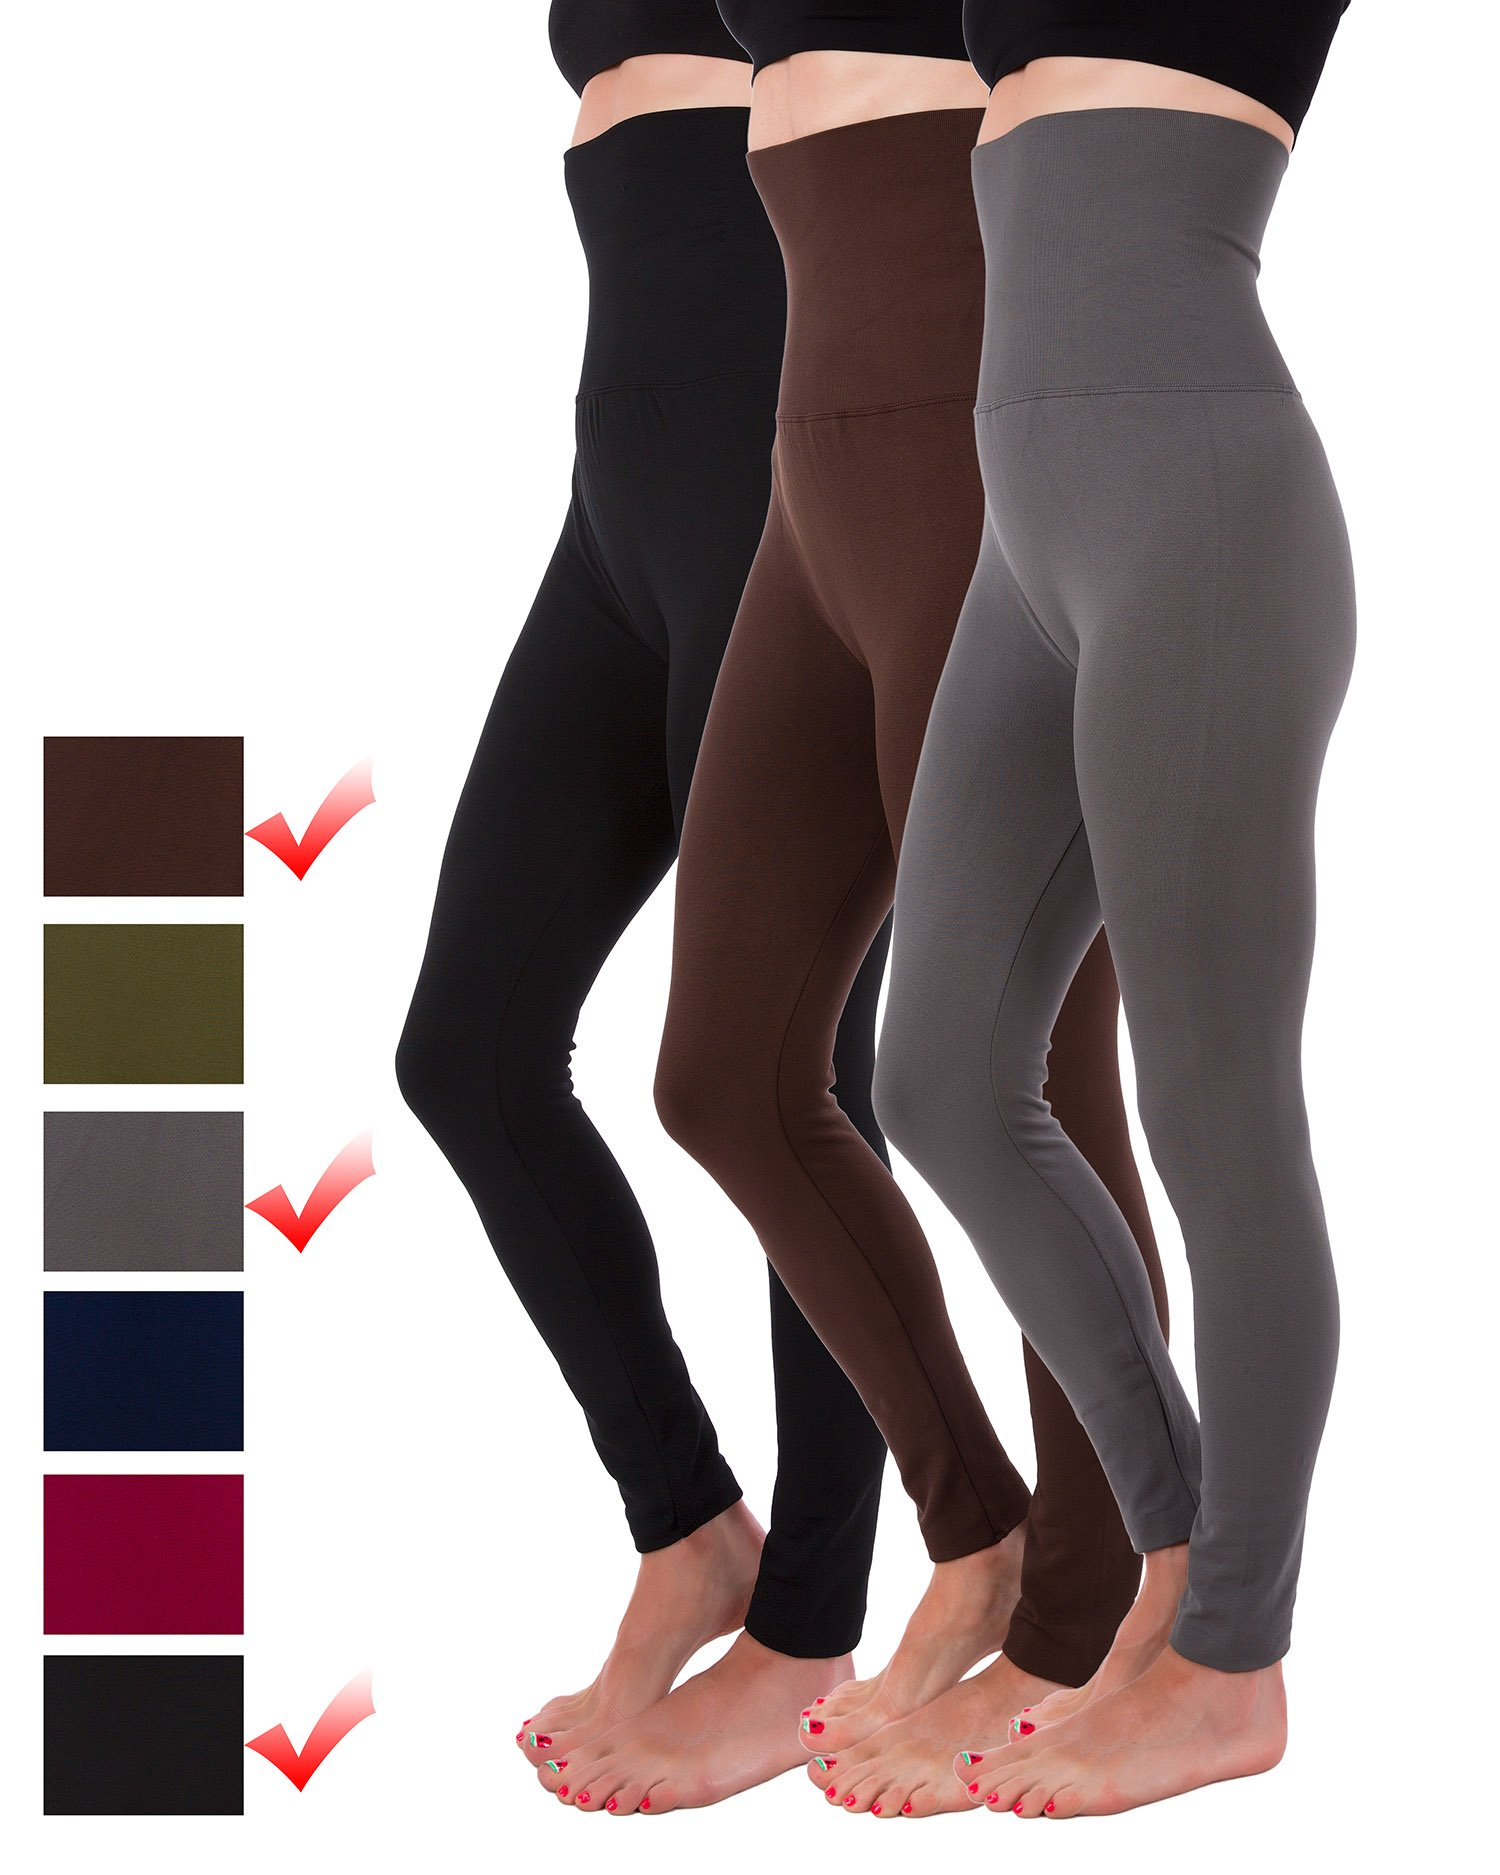 Homma 3-Pack High Waist Compression Fleece Lined Thick Brushed Leggings Thights by (XL/XXL, Black, Brown, Charcoal)